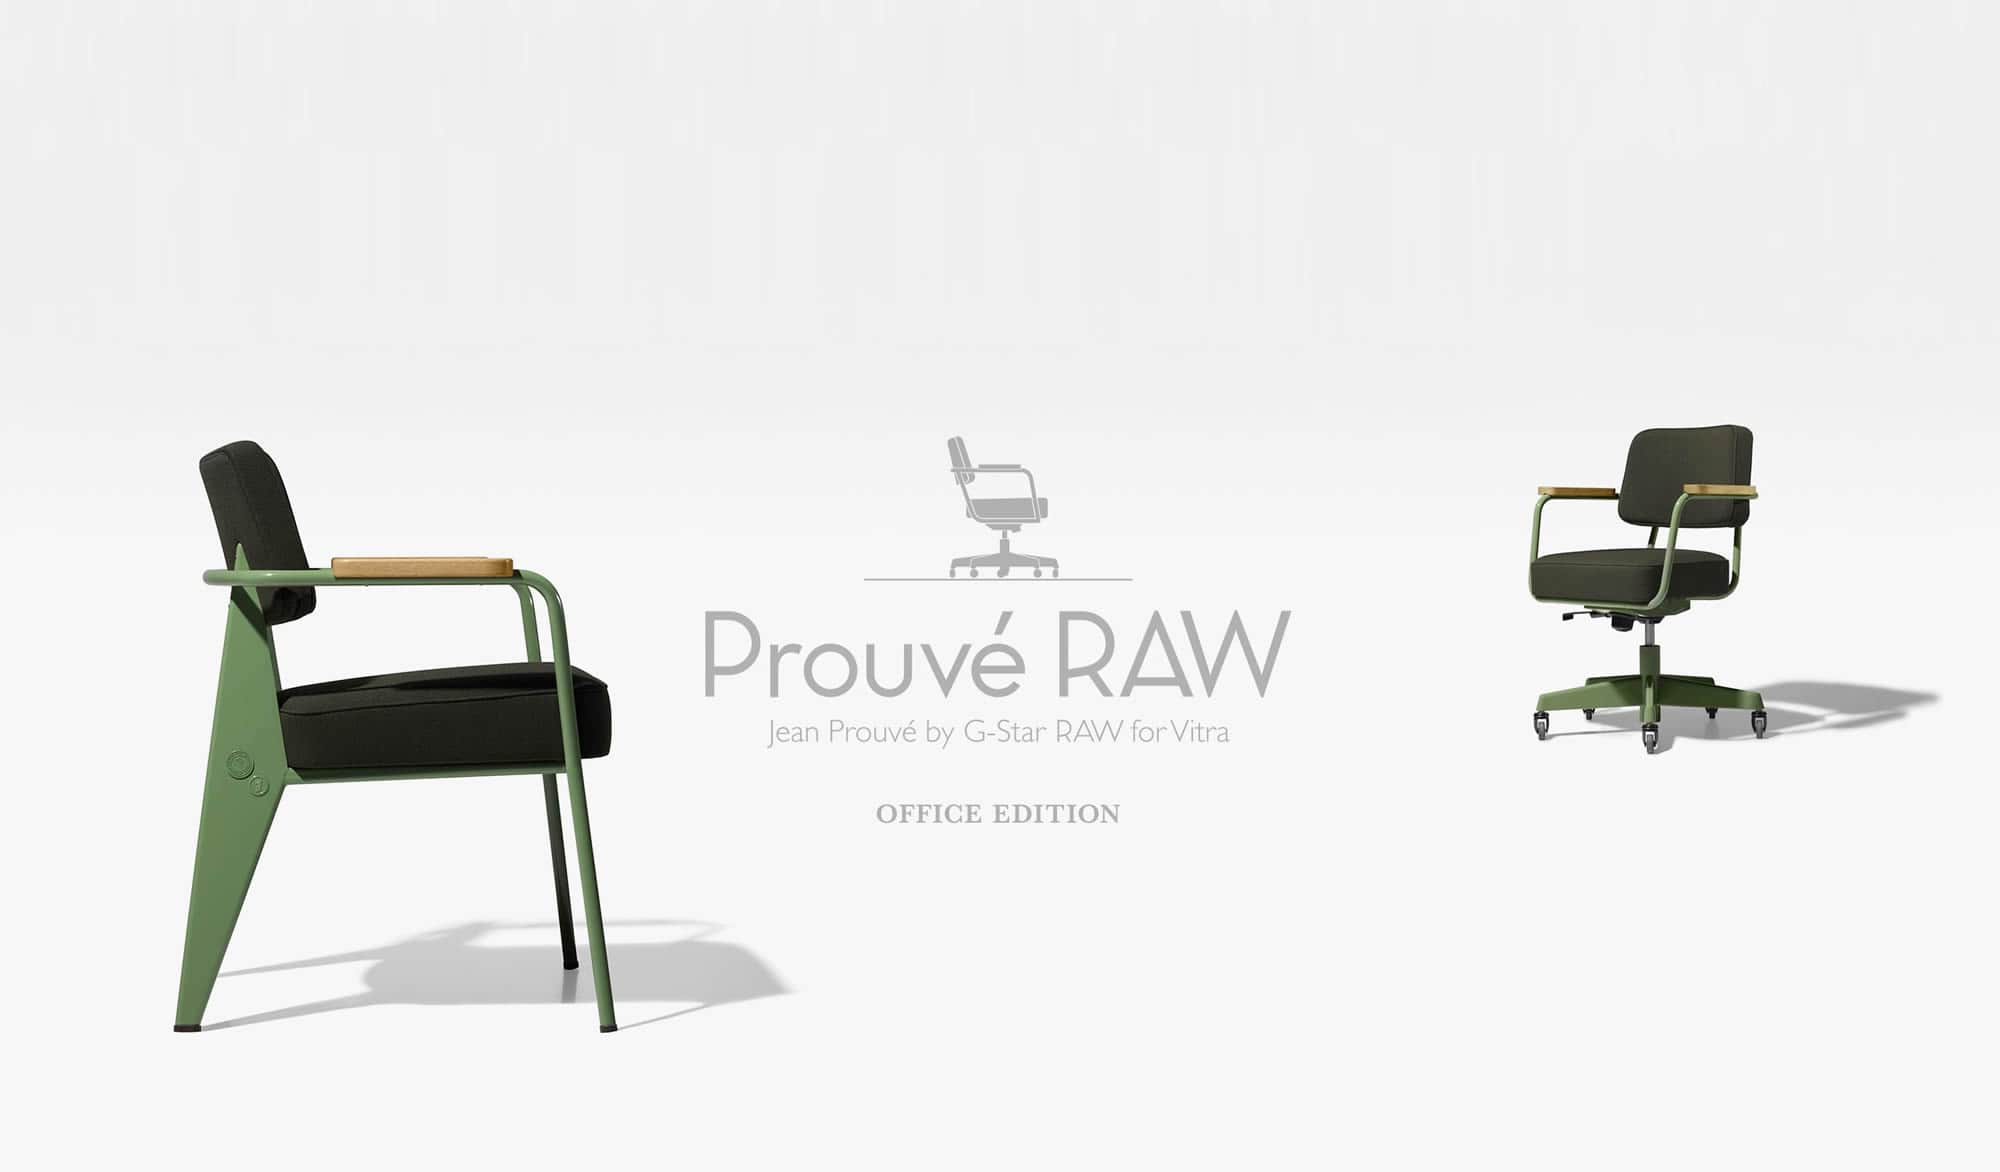 Jean Prouvé by G-Star RAW office chairs